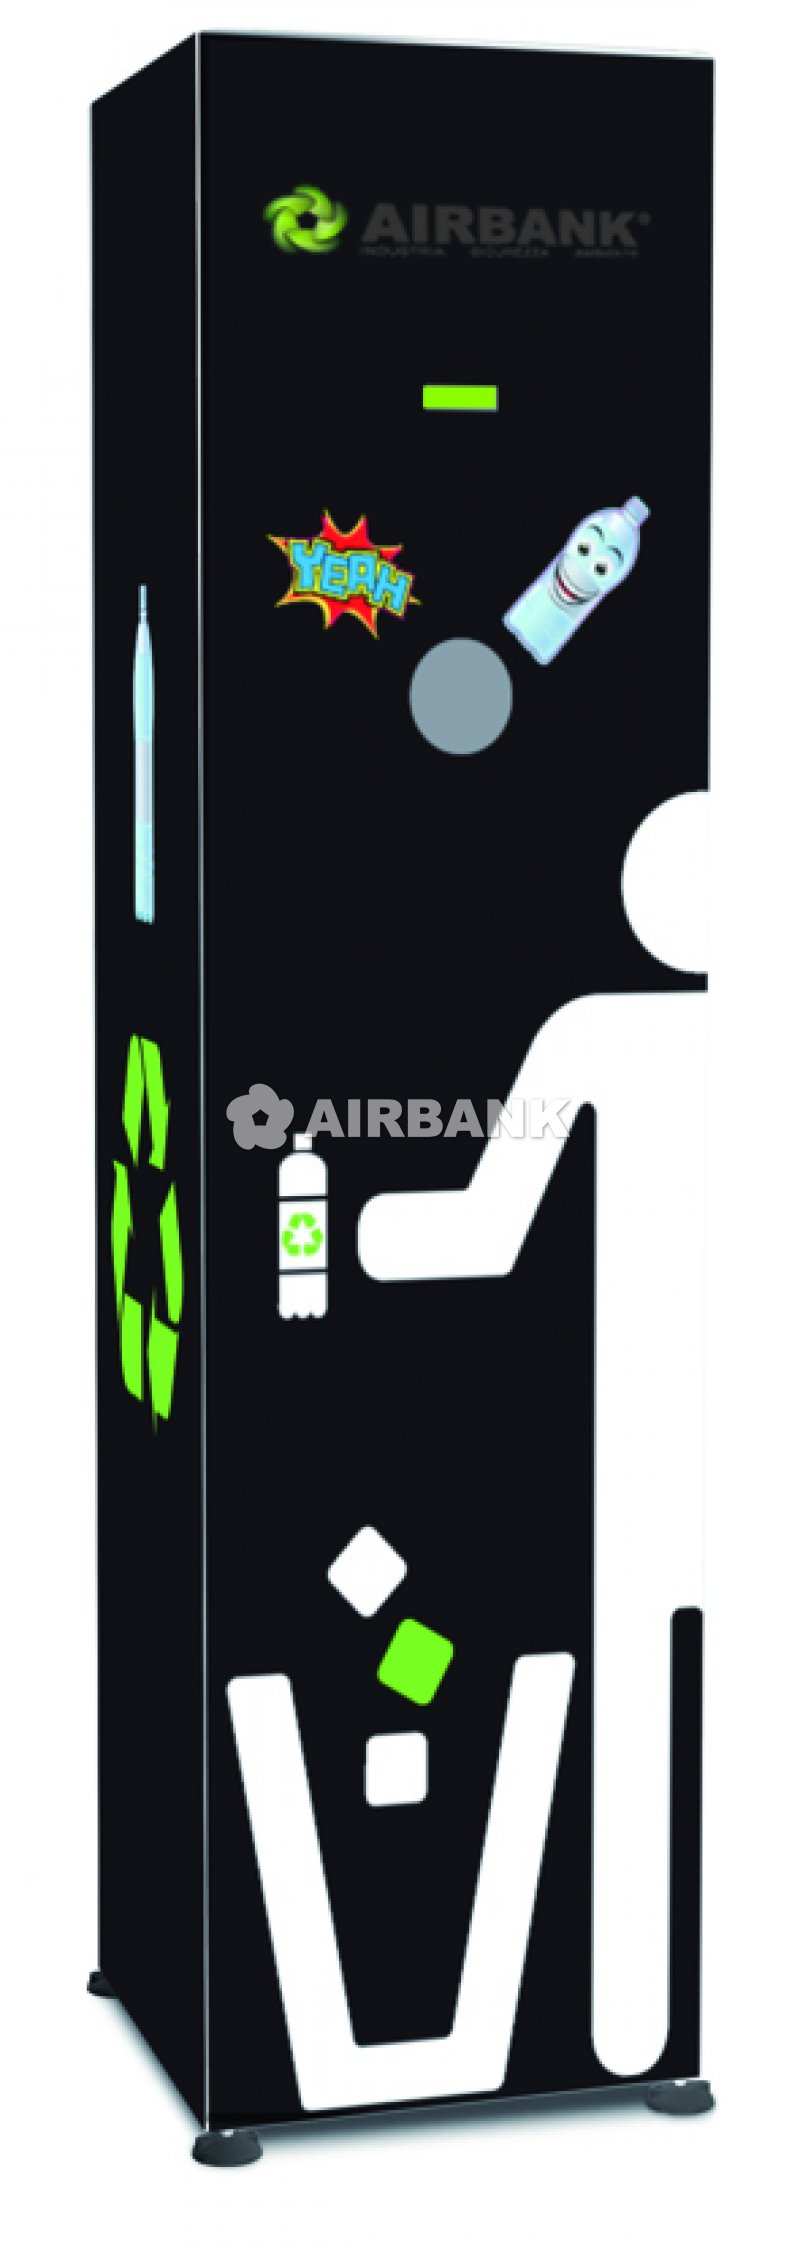 SINGLE-COMPARTMENT COMPACTOR  | AIRBANK Industria Sicurezza Ambiente